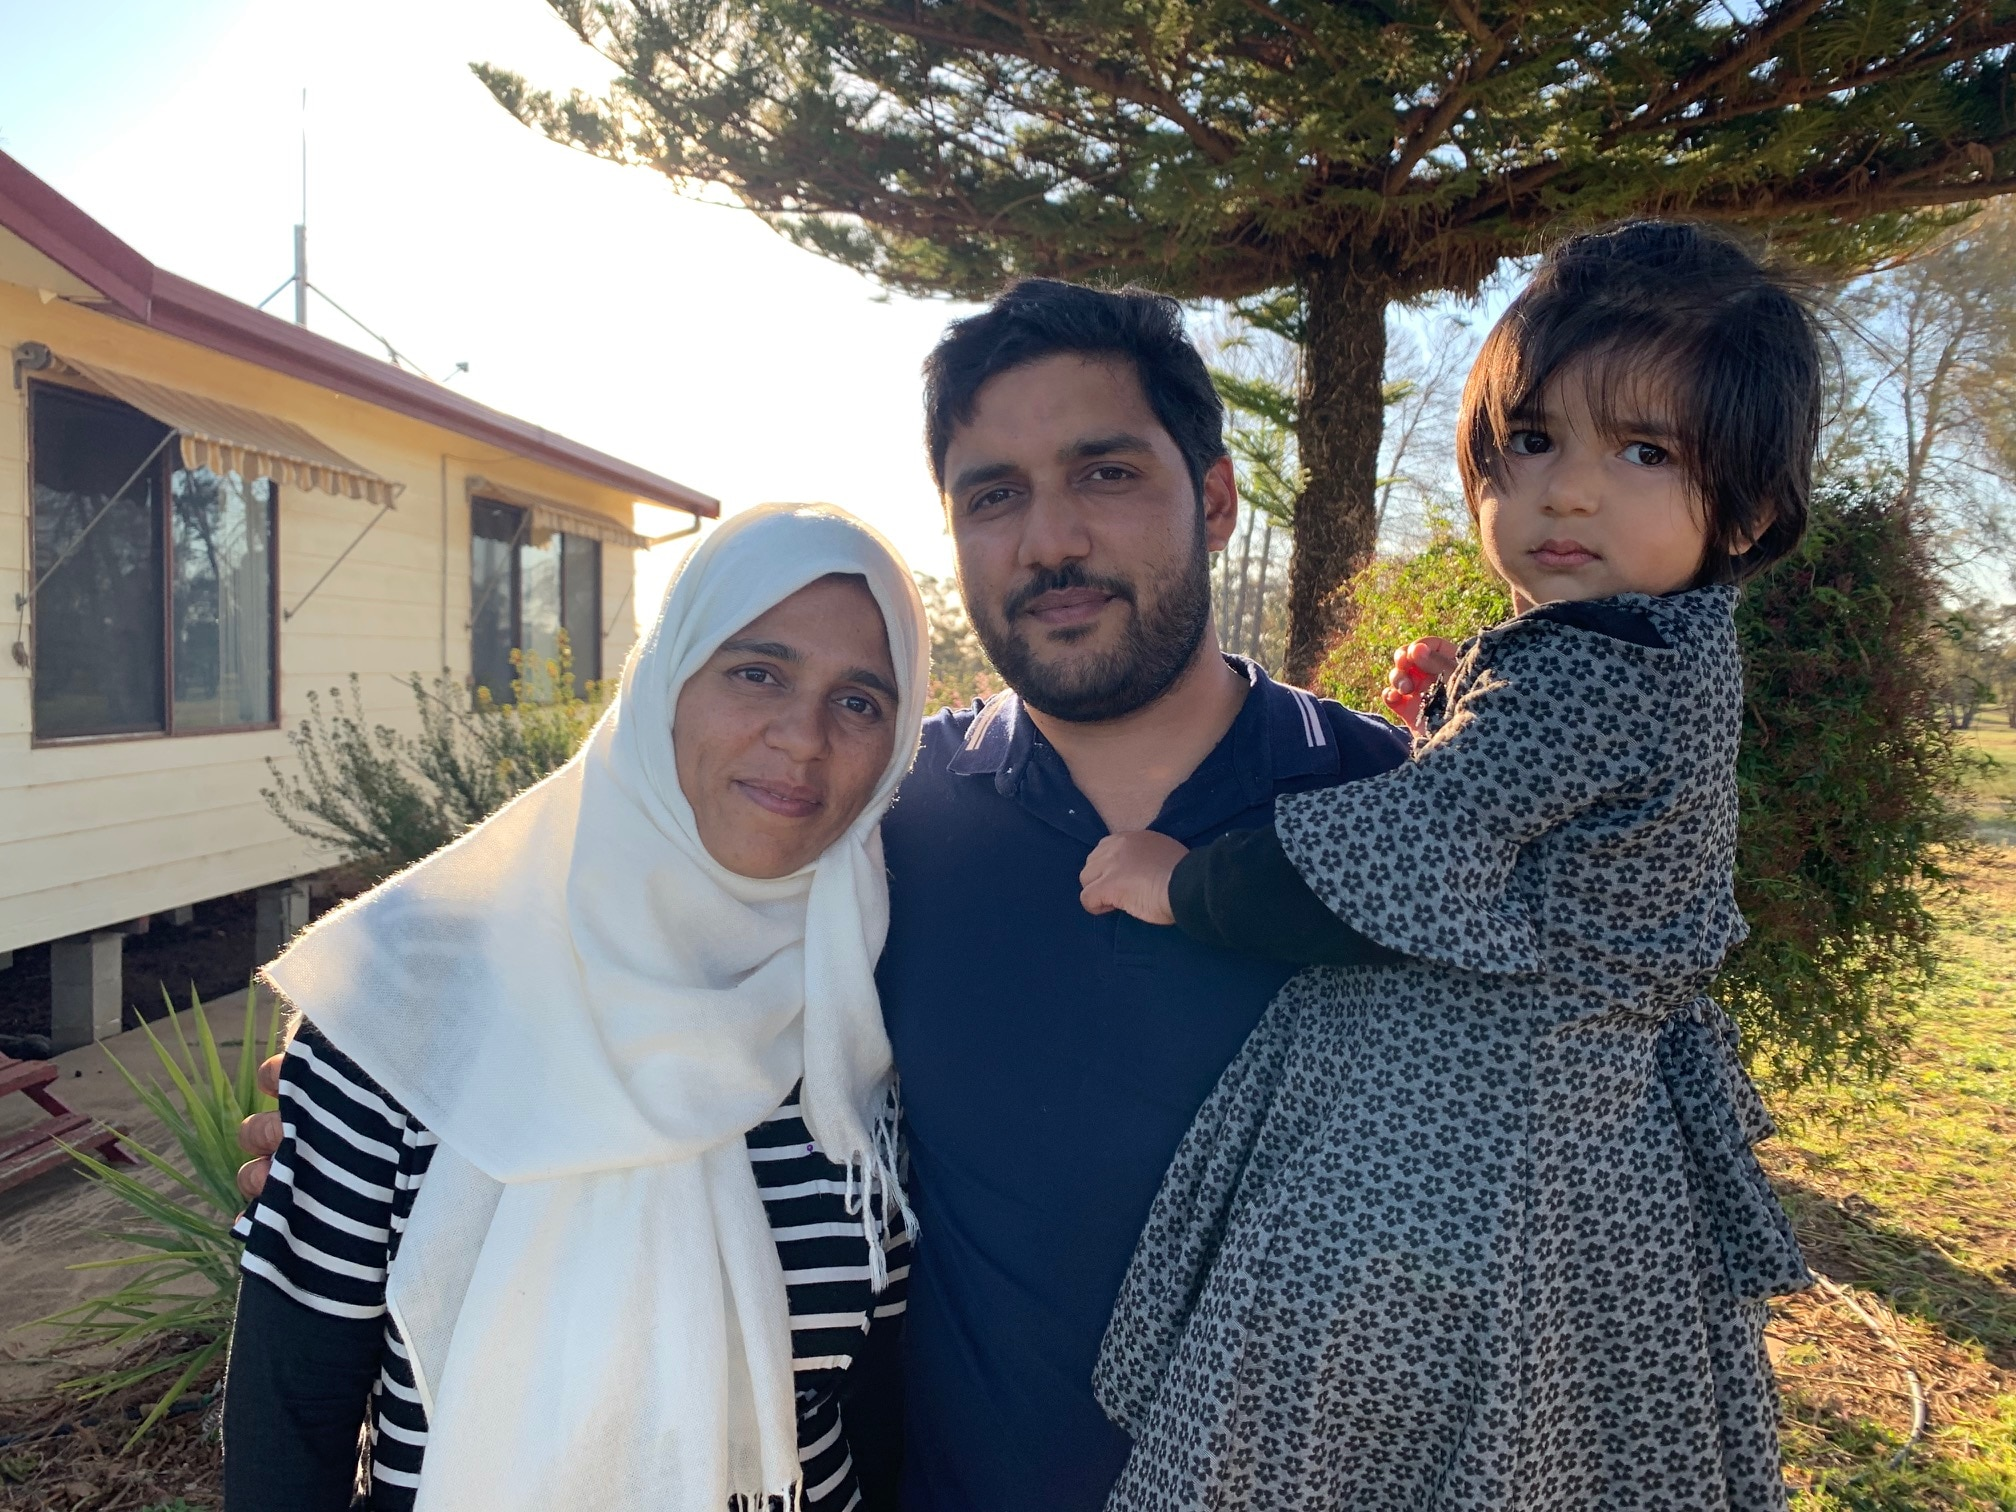 Ali Hussein, wife Ayesha and their daughter Durre are living in Leeton, NSW, after moving from Perth.